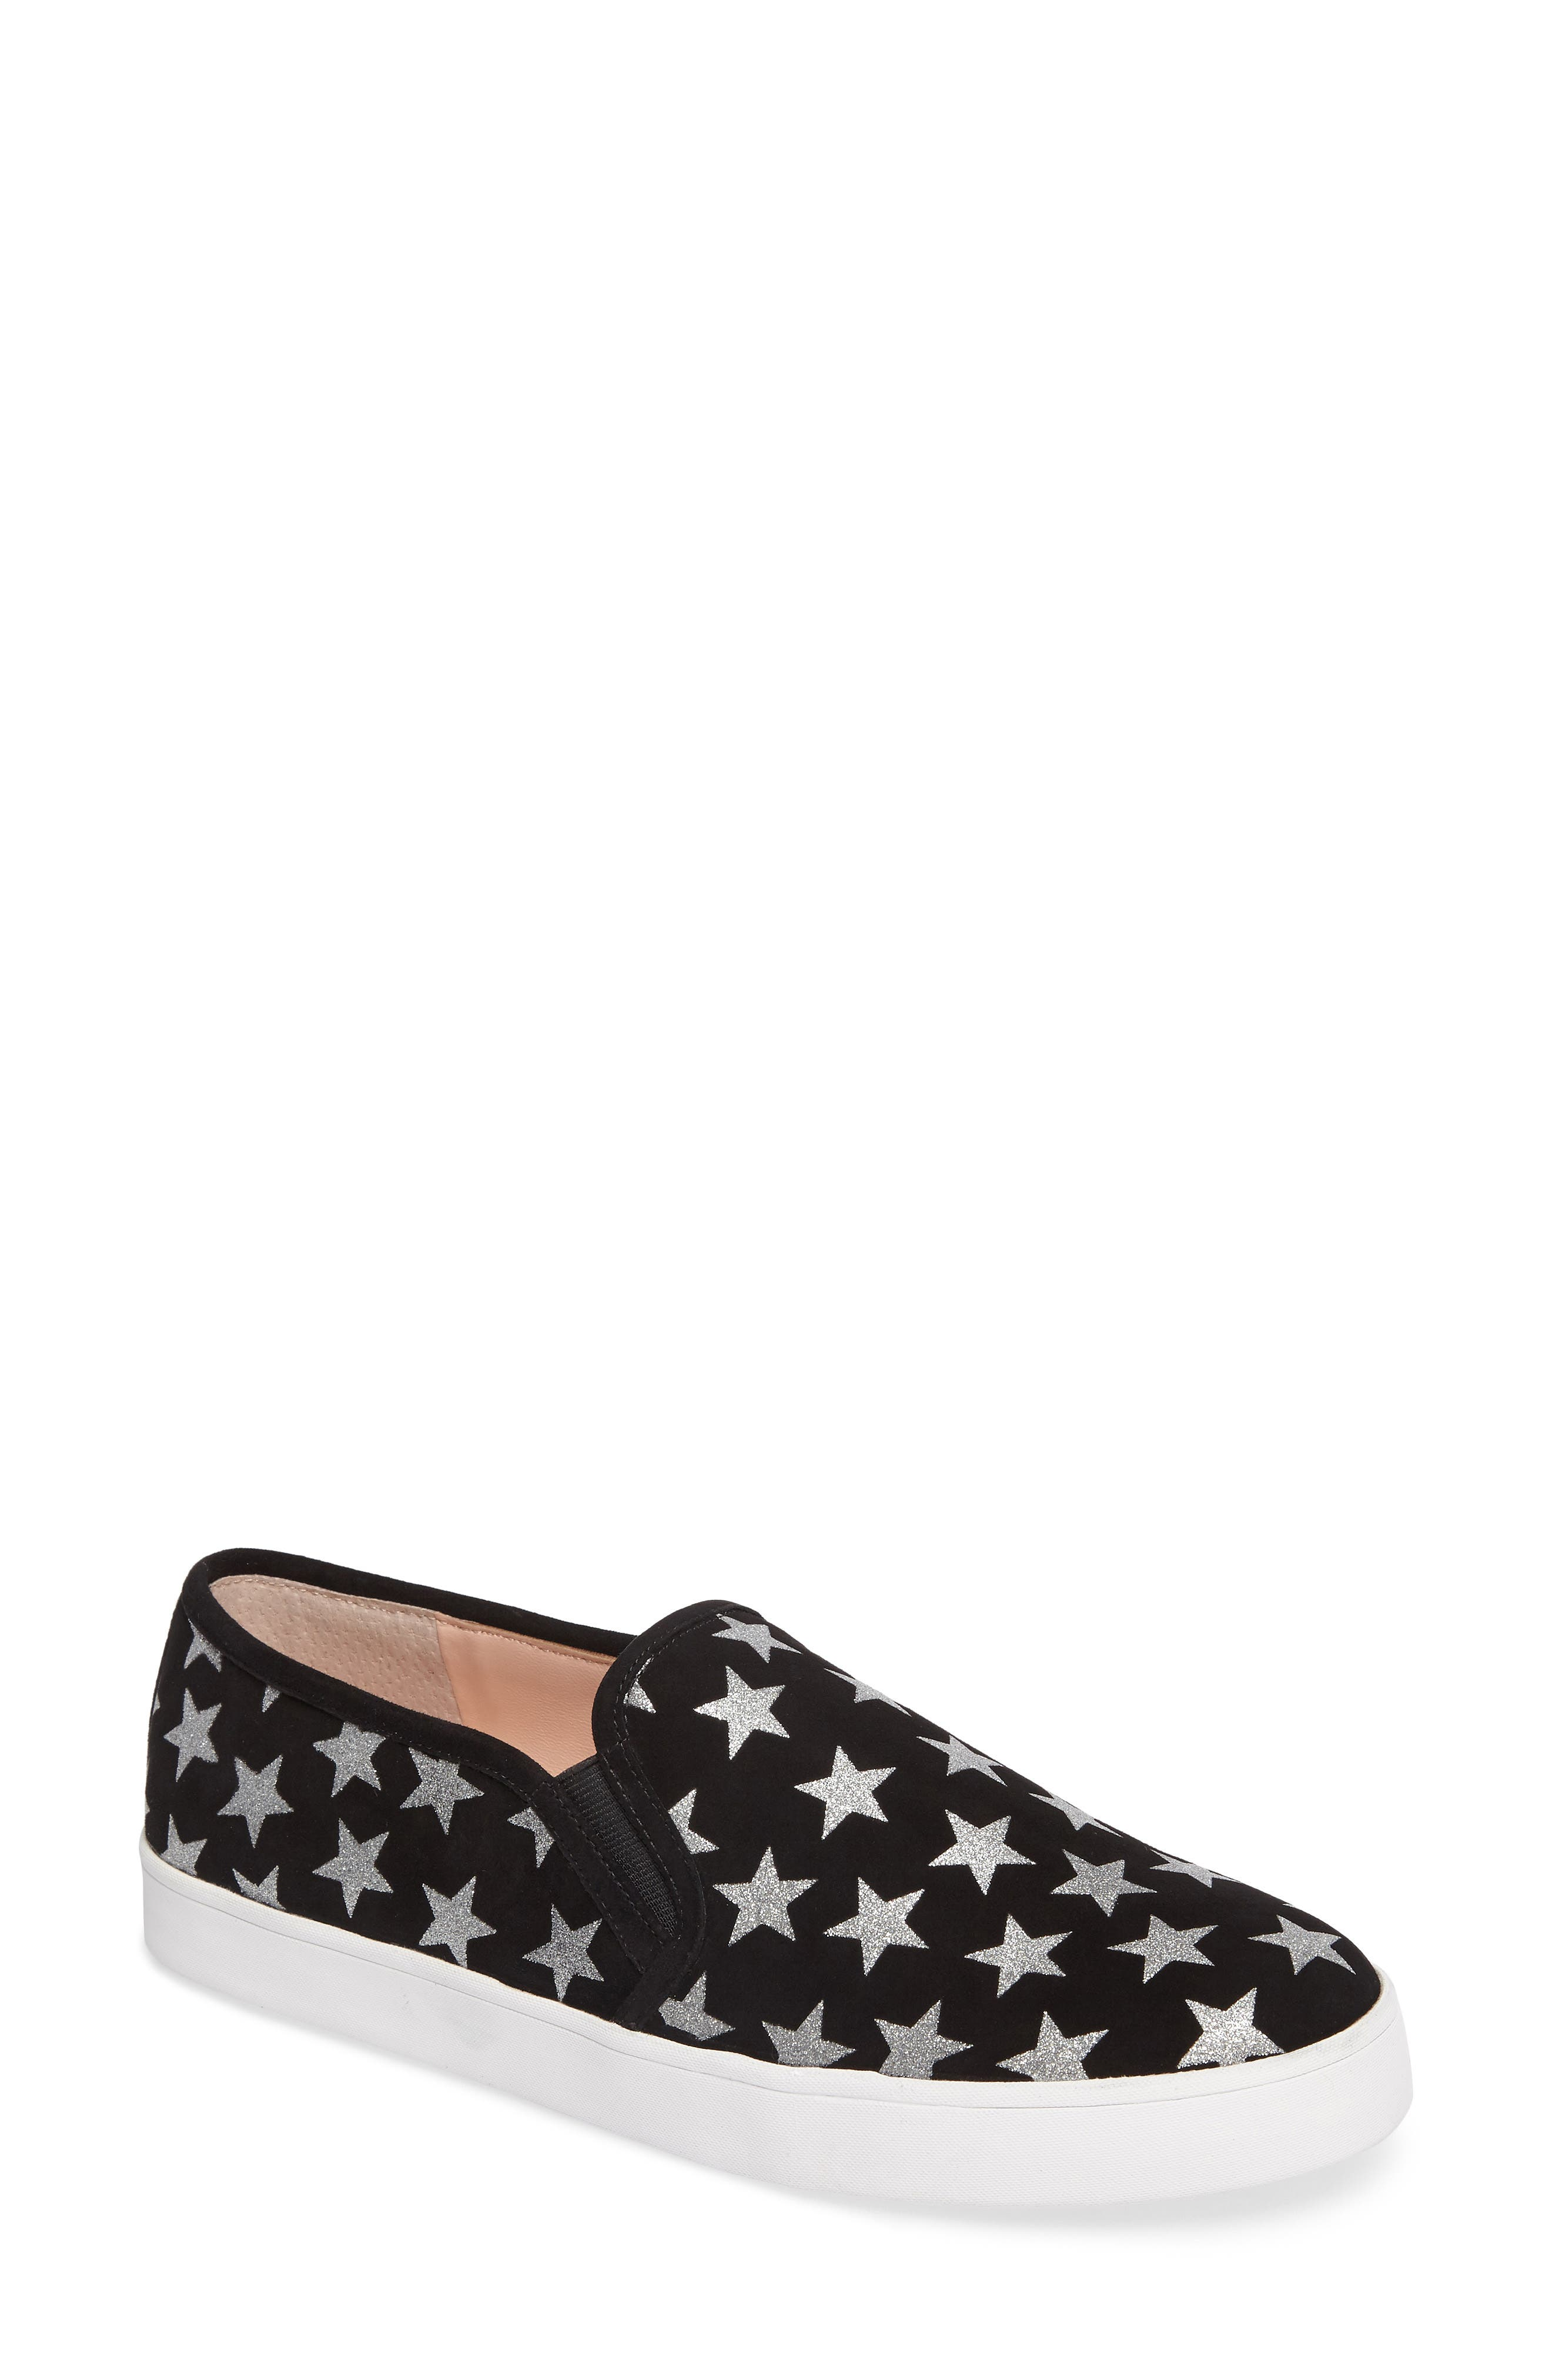 liberty slip-on sneaker,                         Main,                         color, 002